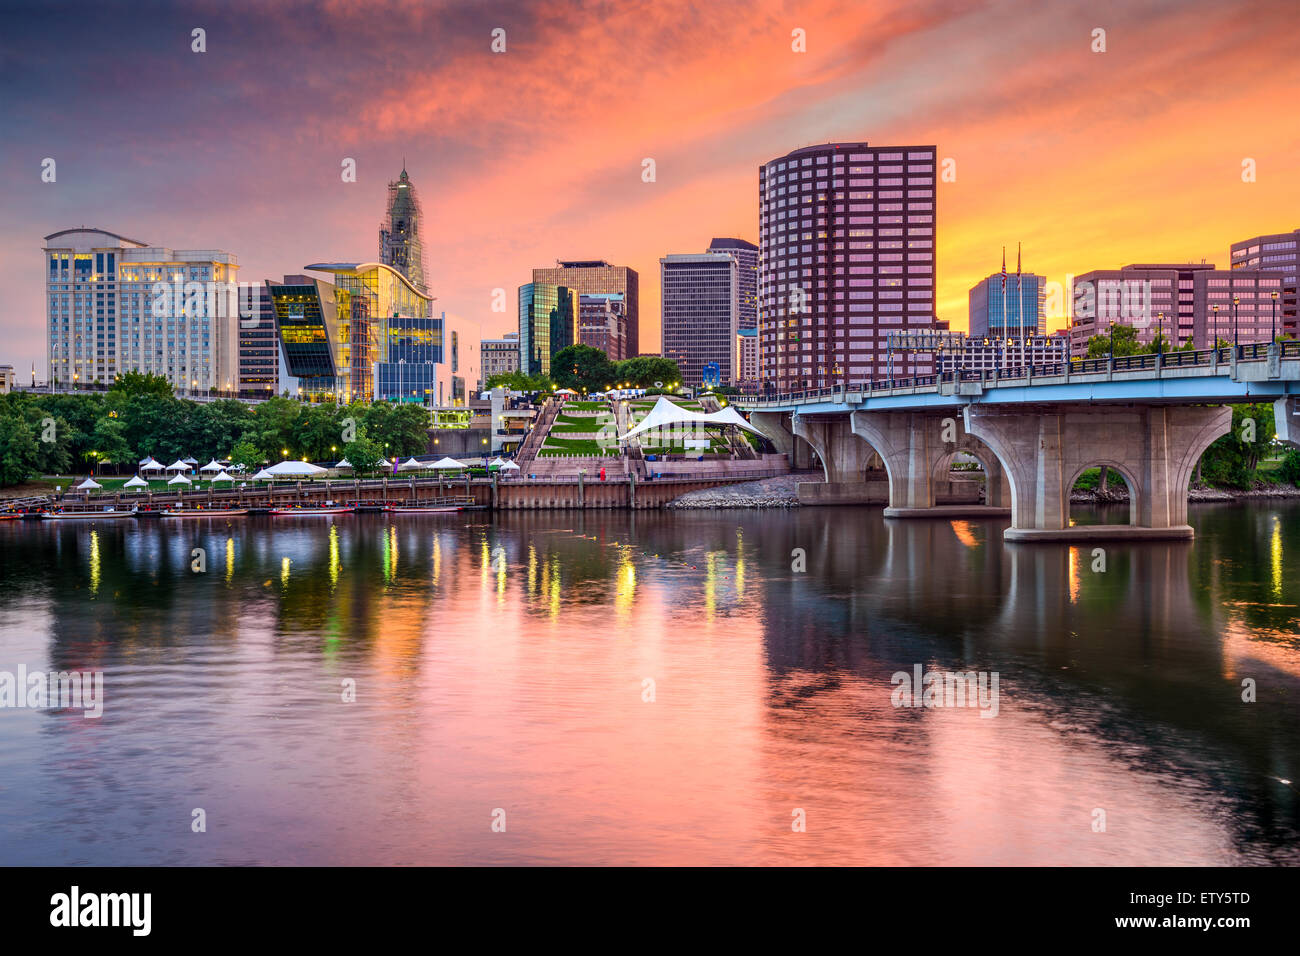 Hartford, Connecticut, USA downtown skyline. - Stock Image